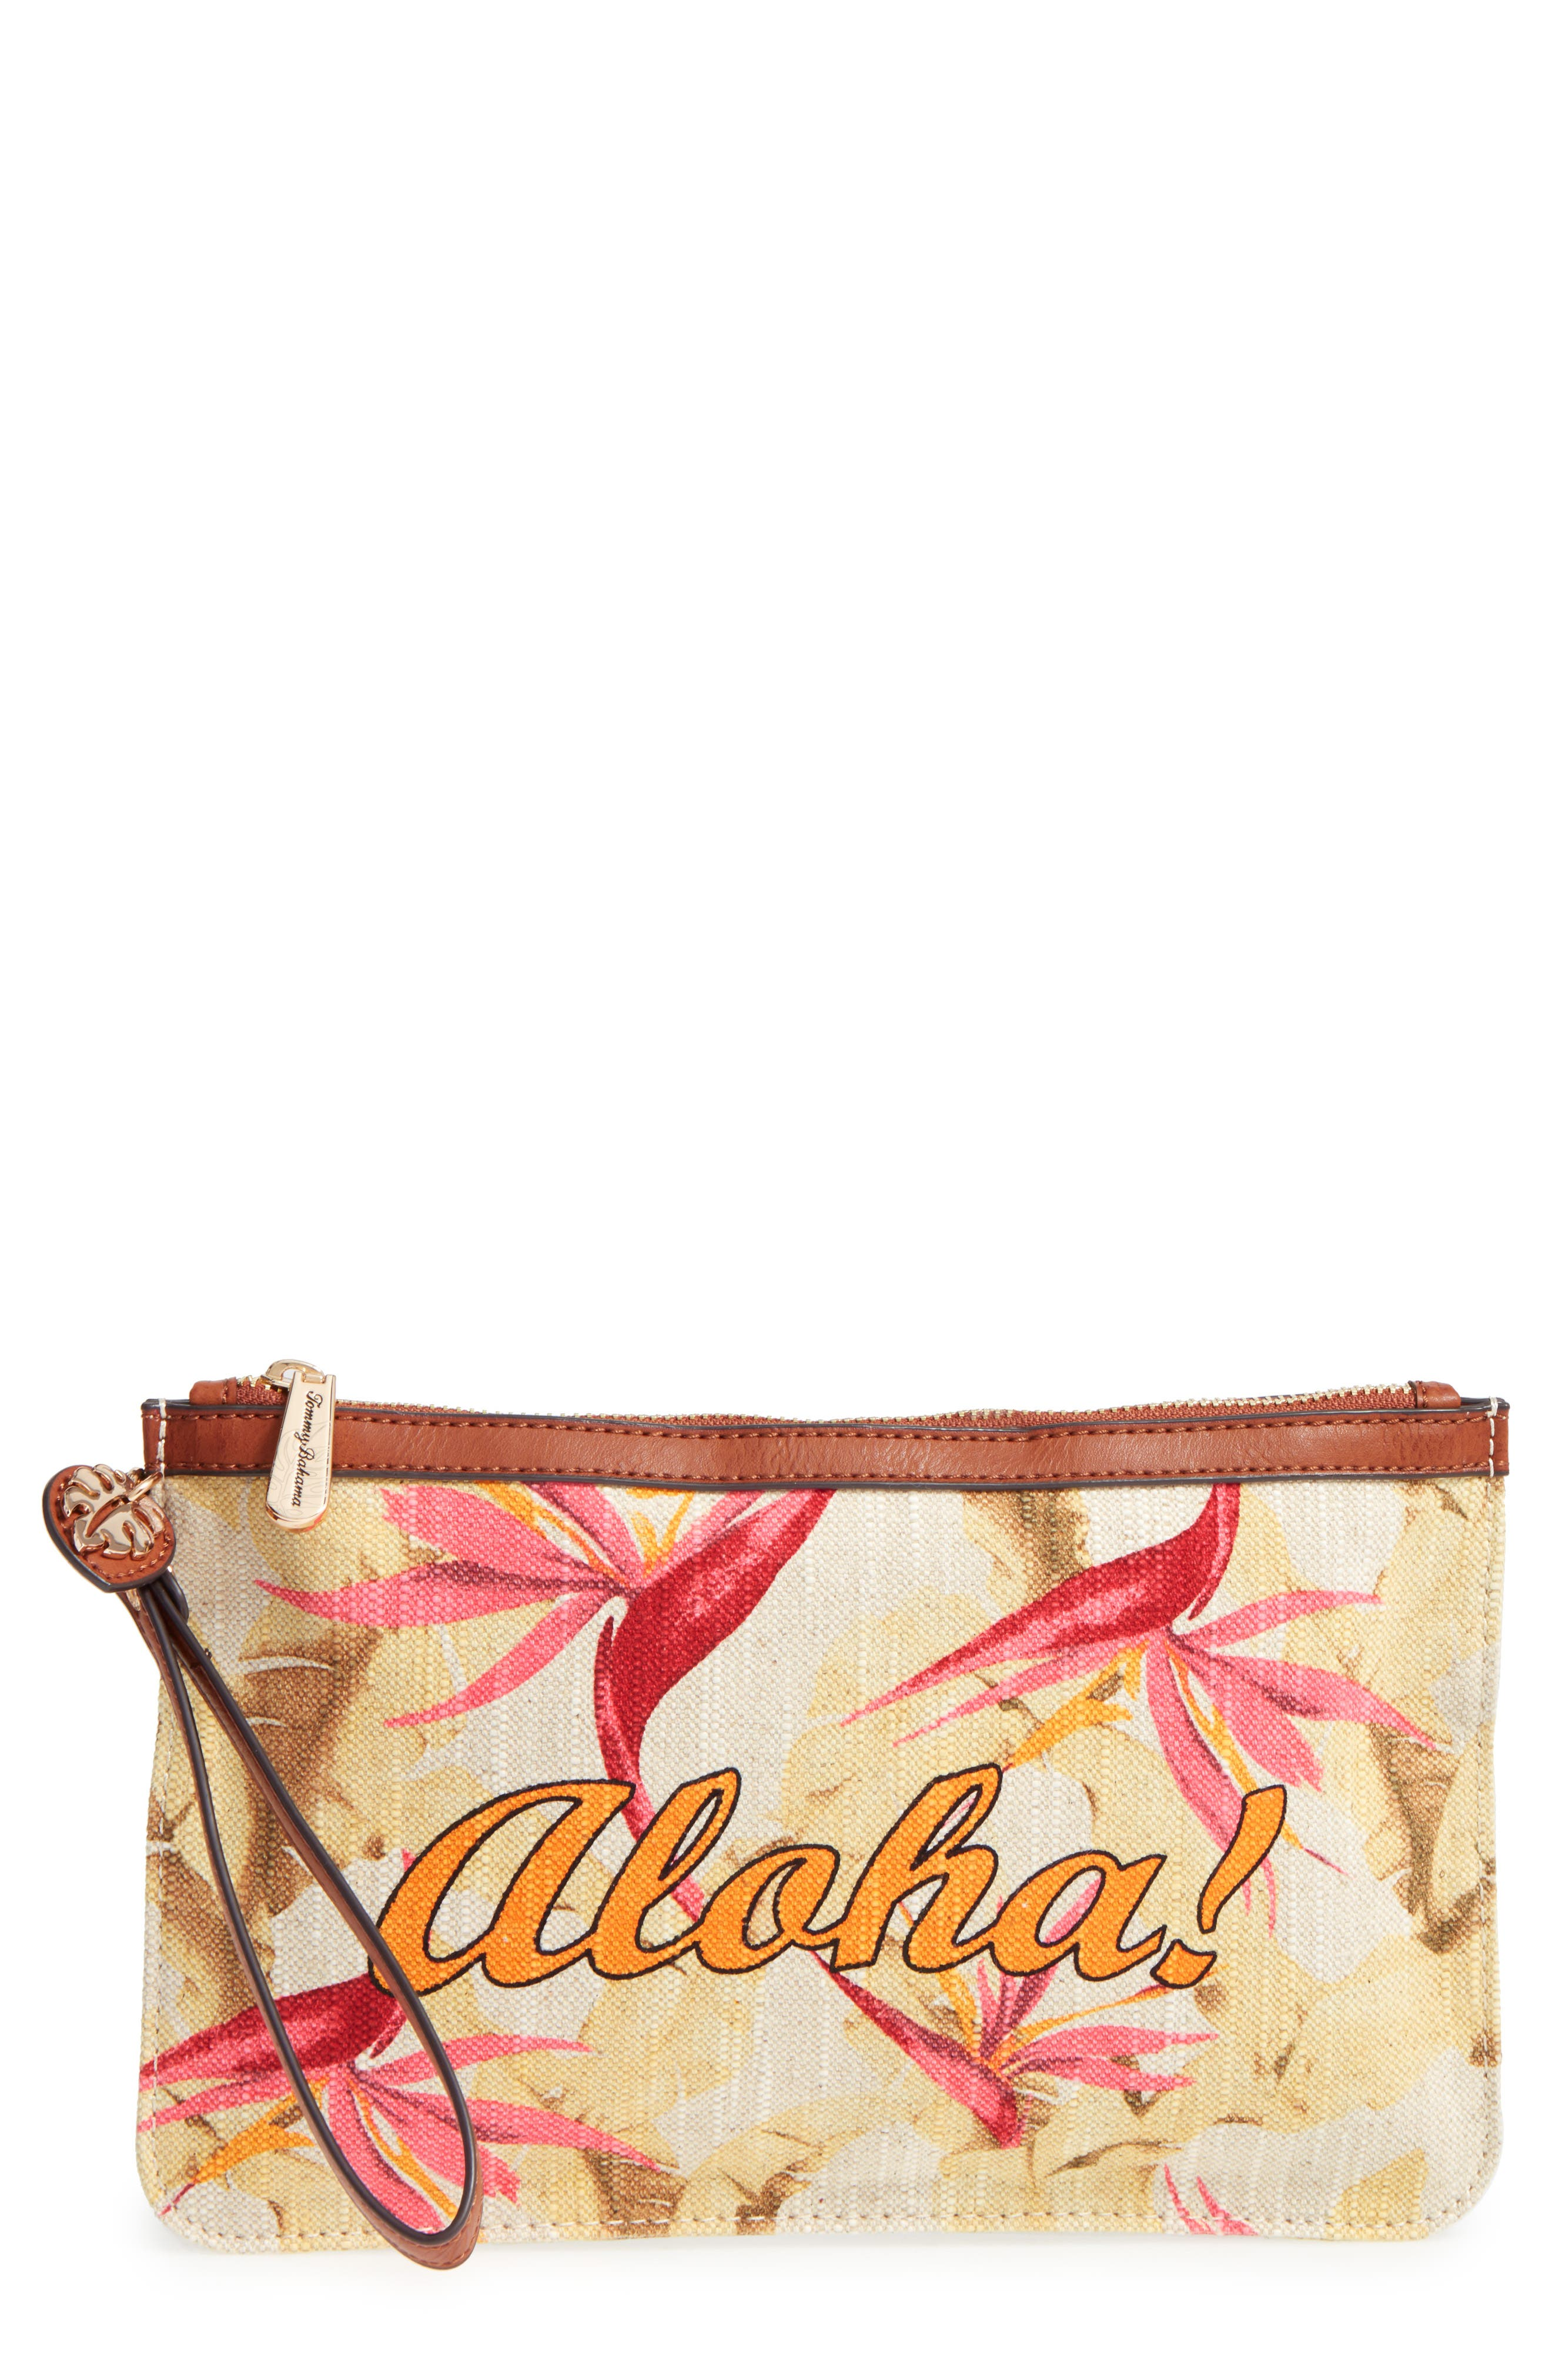 Boca Chica Beach Wristlet,                         Main,                         color, Aloha